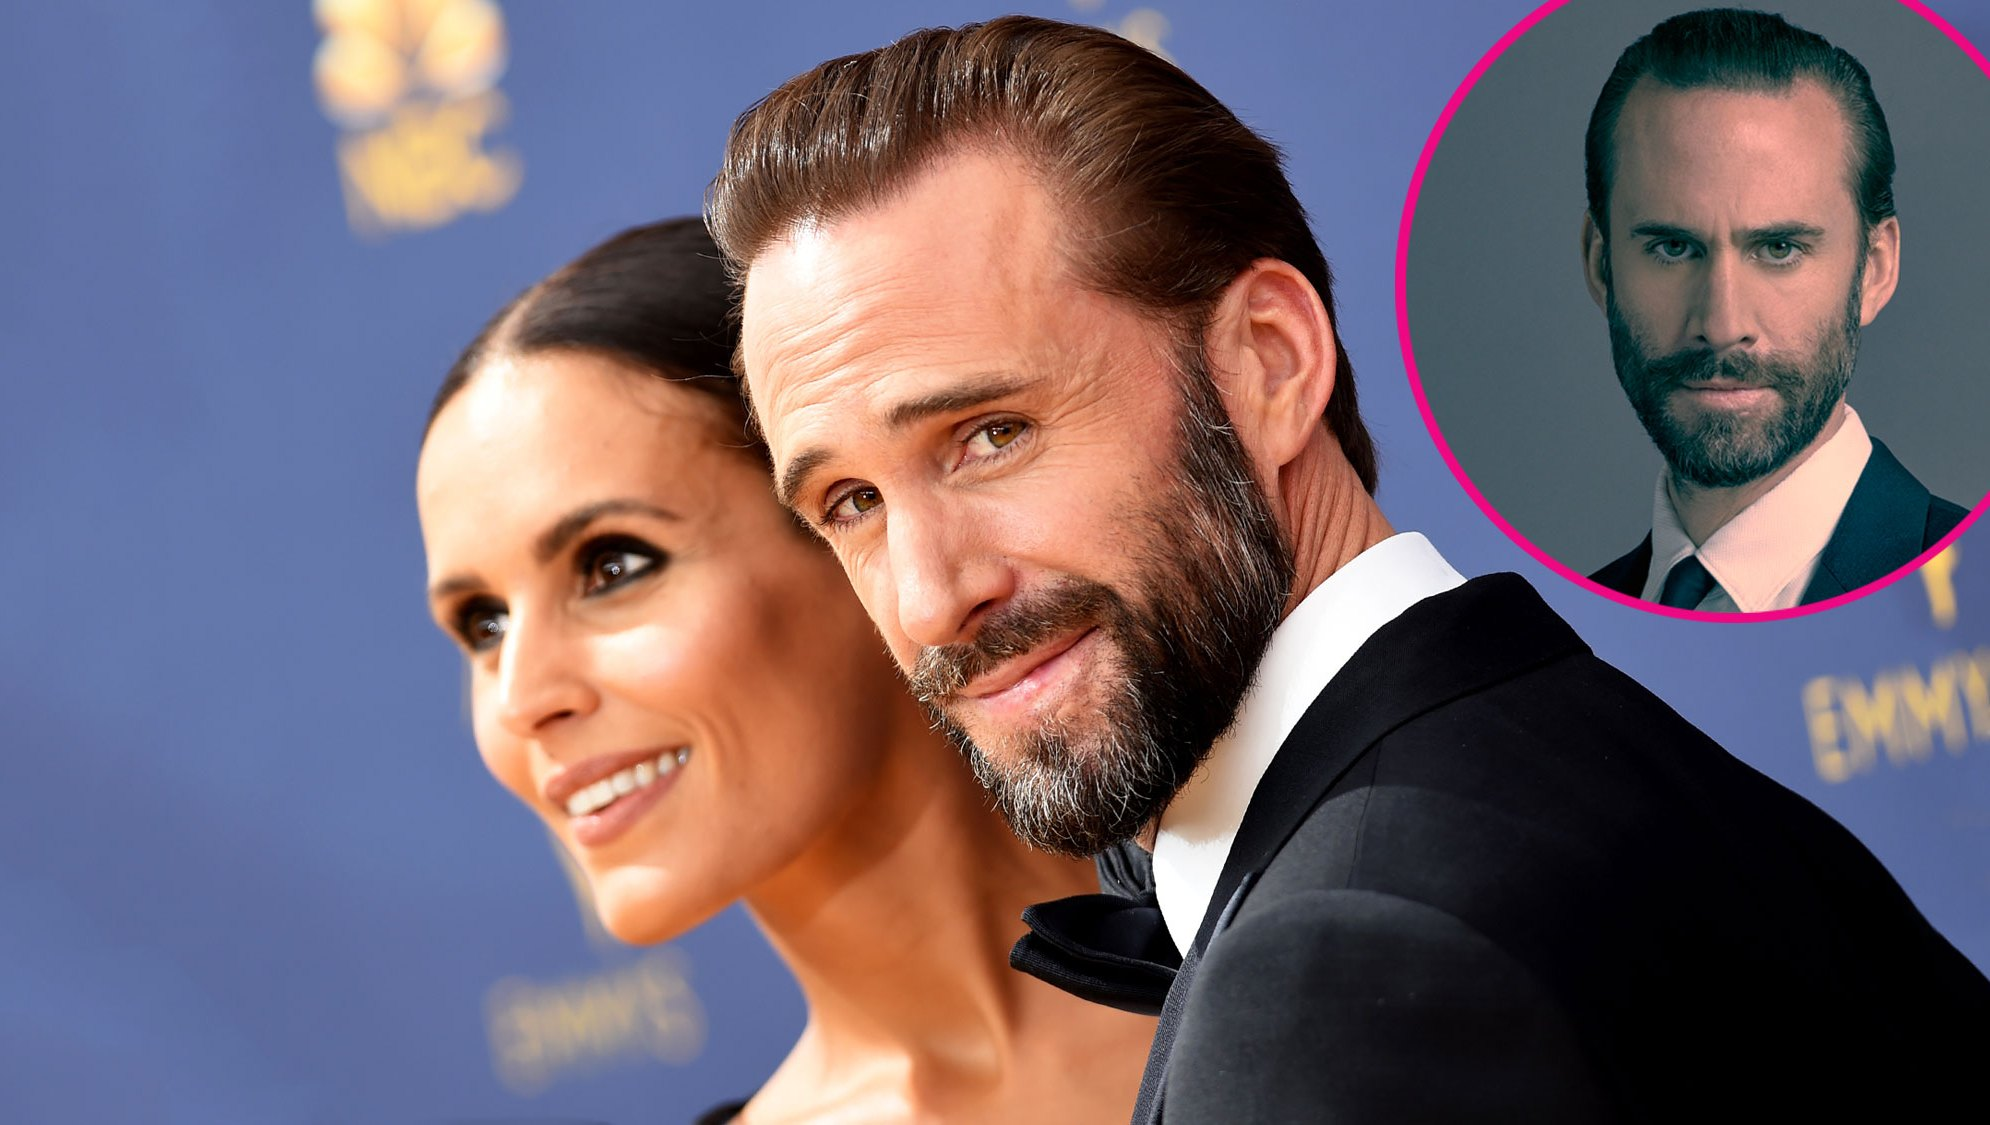 Joseph Fiennes and his wife, Maria Dolores Dieguez